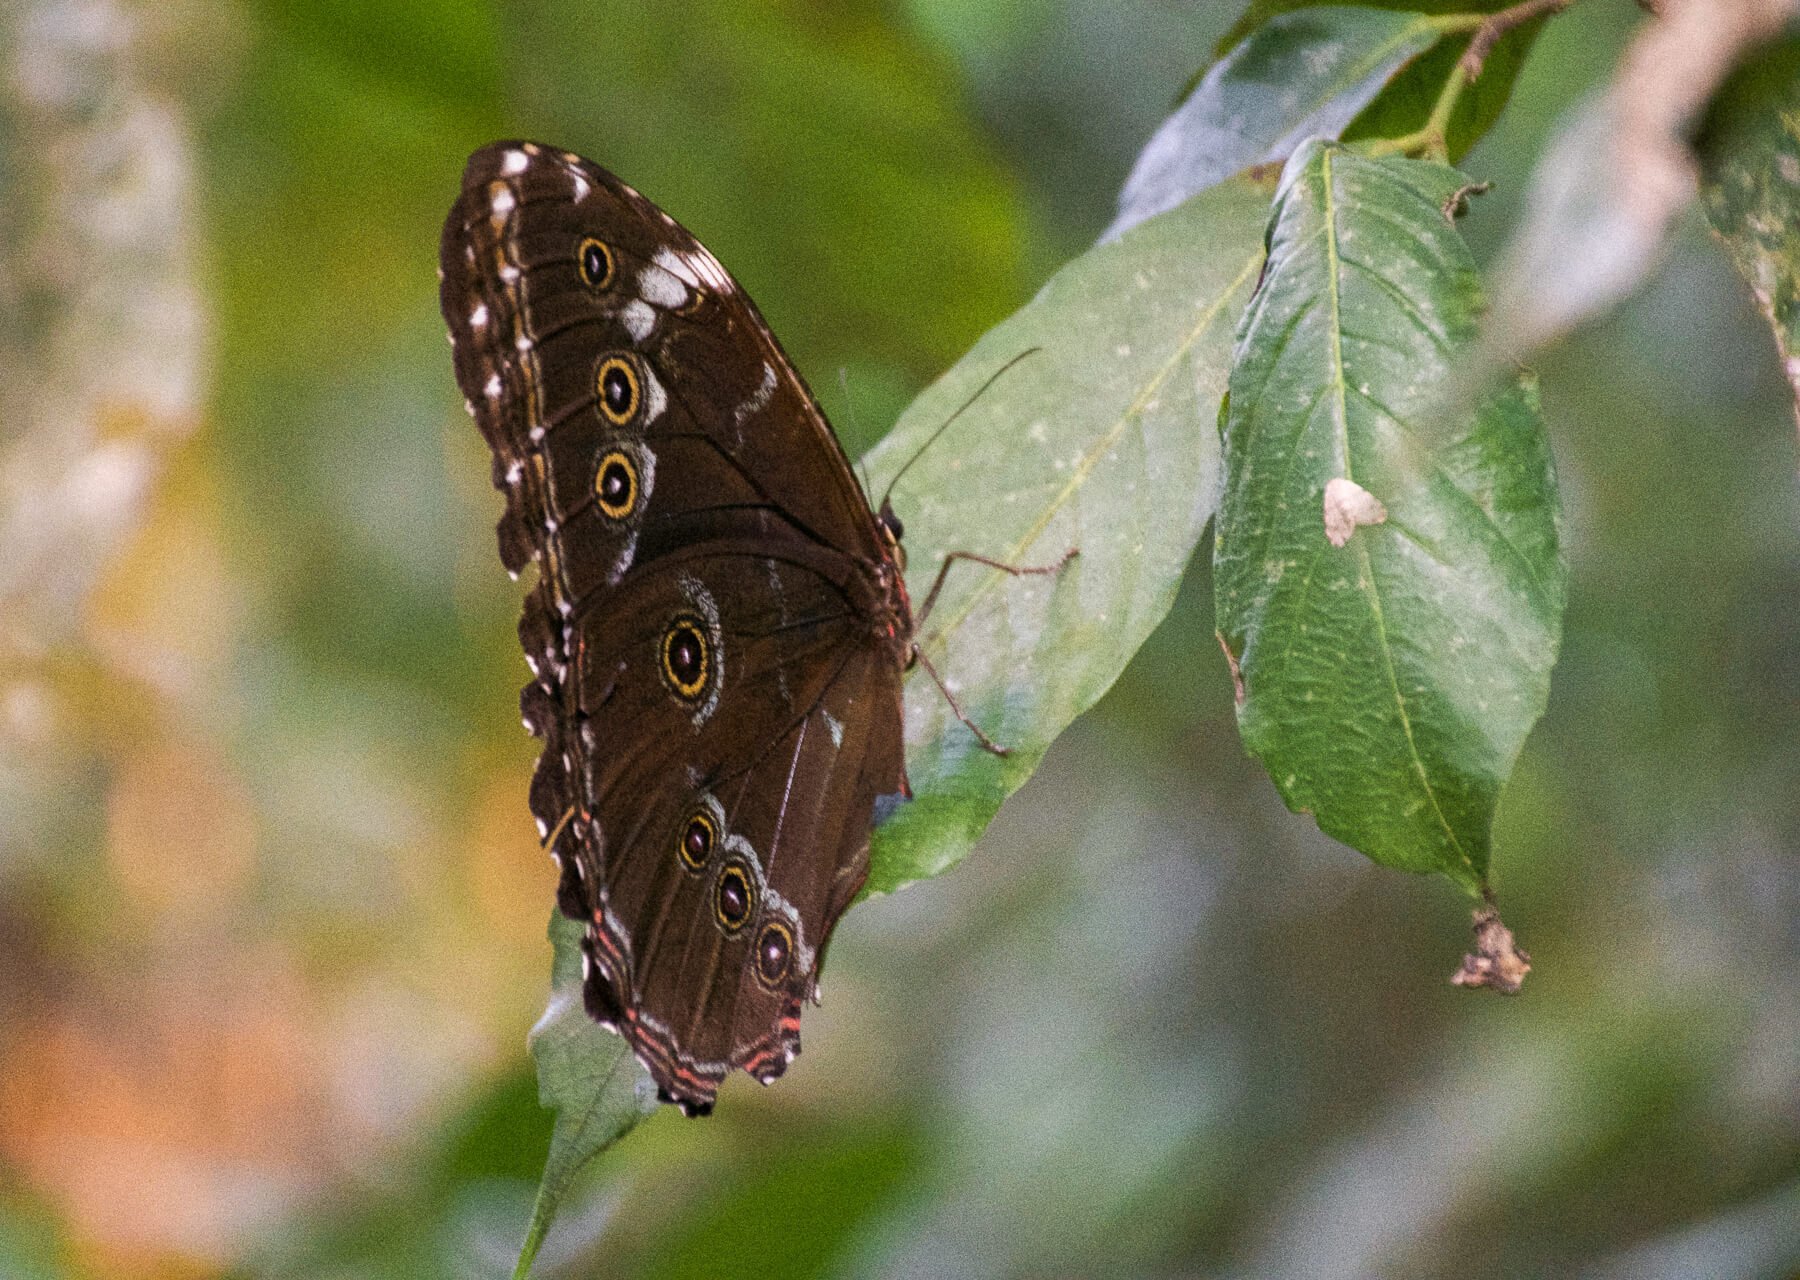 A brown butterfly with yellow wings perched on a leaf in the Amazon